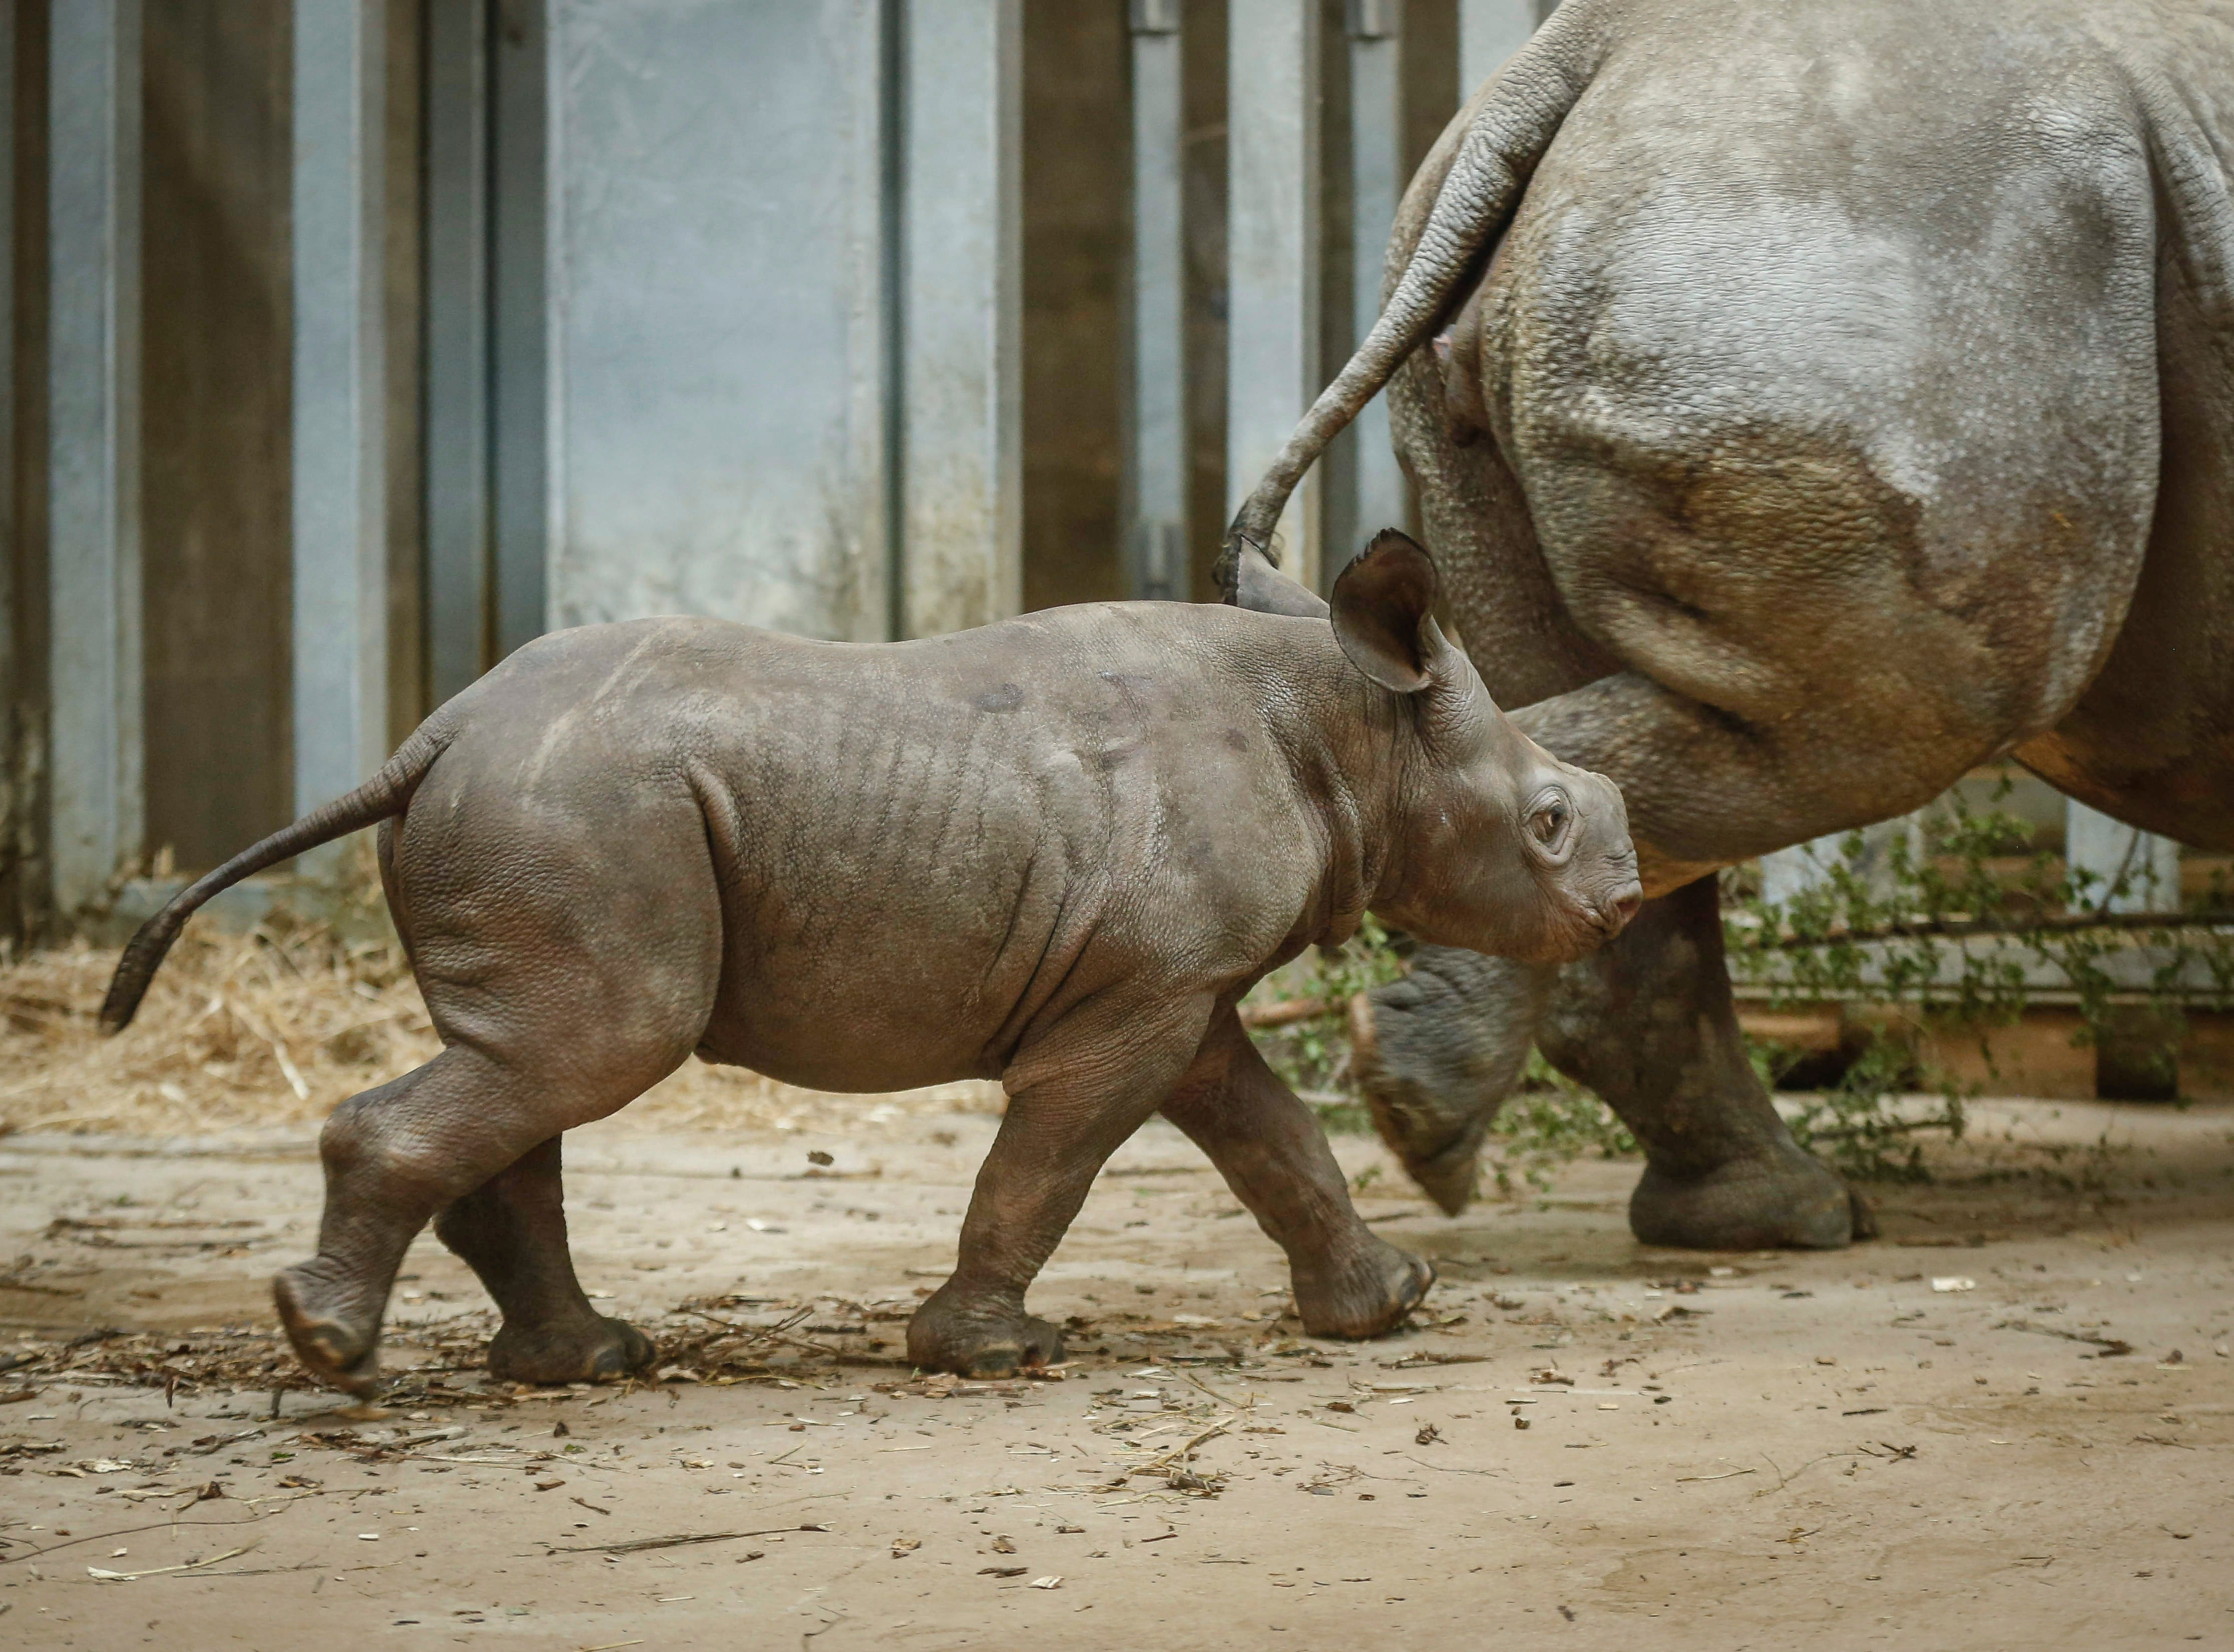 Kamara, a baby rhinoceros, paces the display area alongside her mother, Ayana, on Saturday, May 11, 2019, at the Blank Park Zoo in Des Moines. It was the first day the public got to get a personal look at Kamara, who was born on April 5.